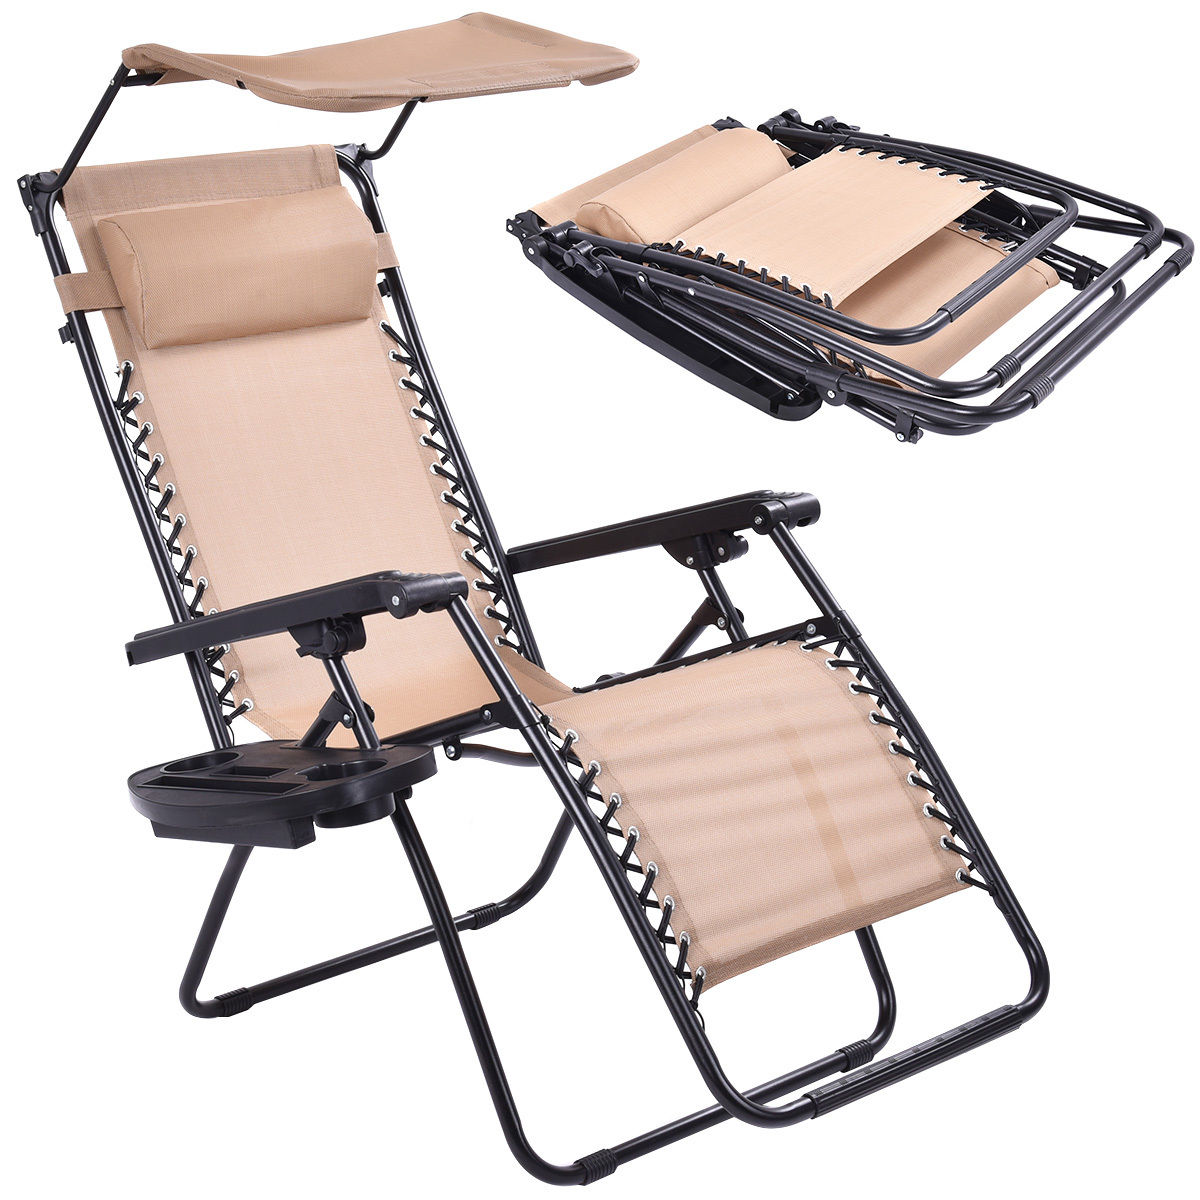 Beach Chair With Canopy And Cup Holder Impex Easy Outdoor Zero Gravity Lounge Rocker